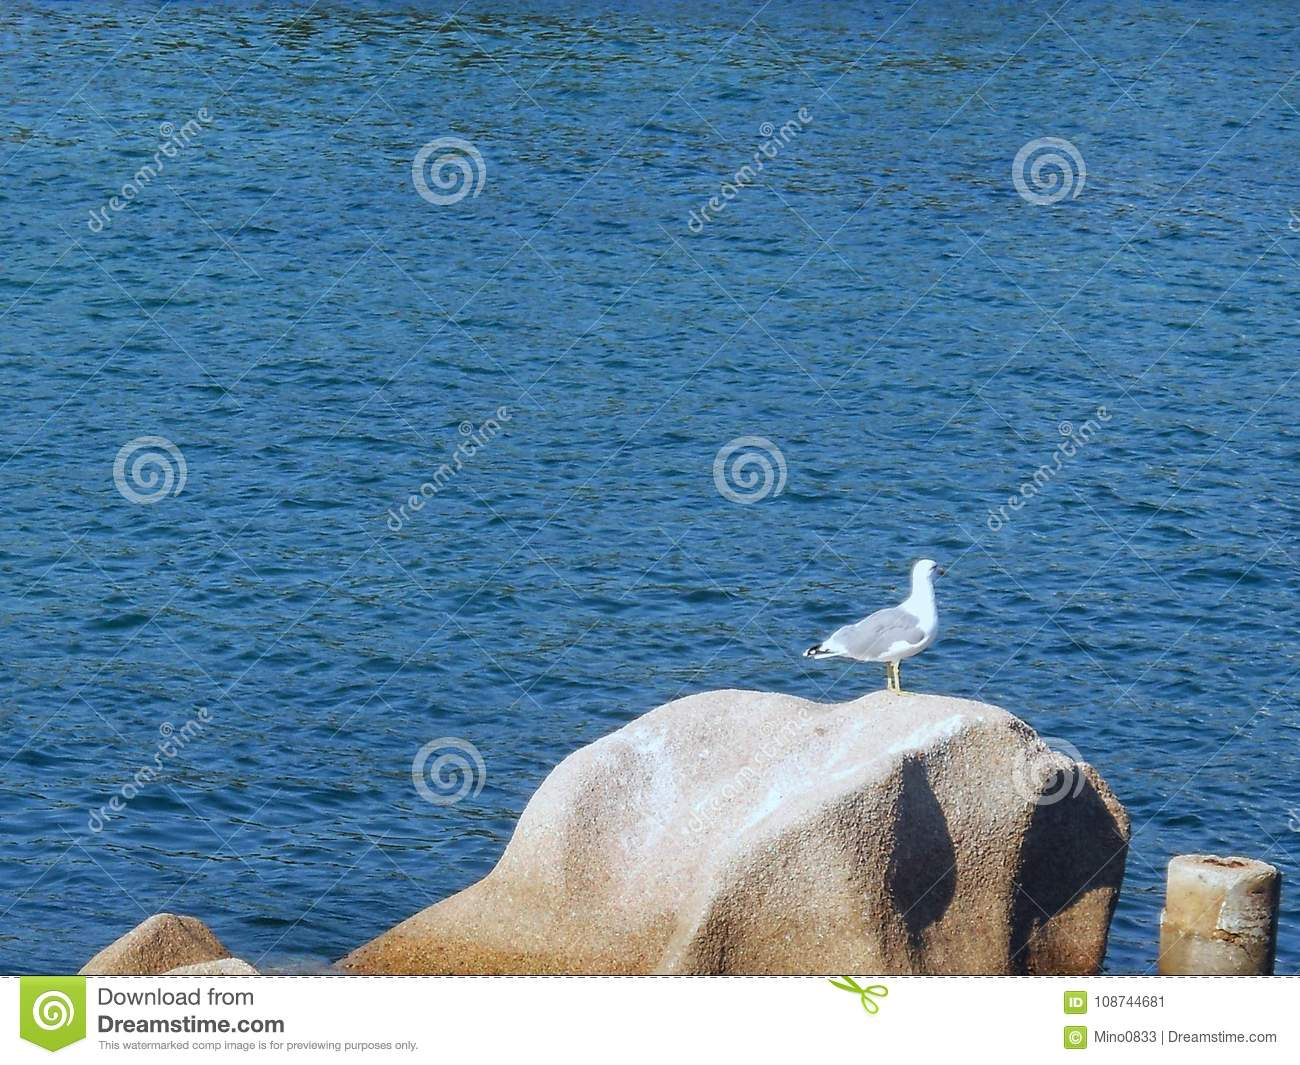 Beautiful Pictures Of Seagulls Large And Free To Use As Desktop Backgrounds Background Photos Wallpapers Screensaver